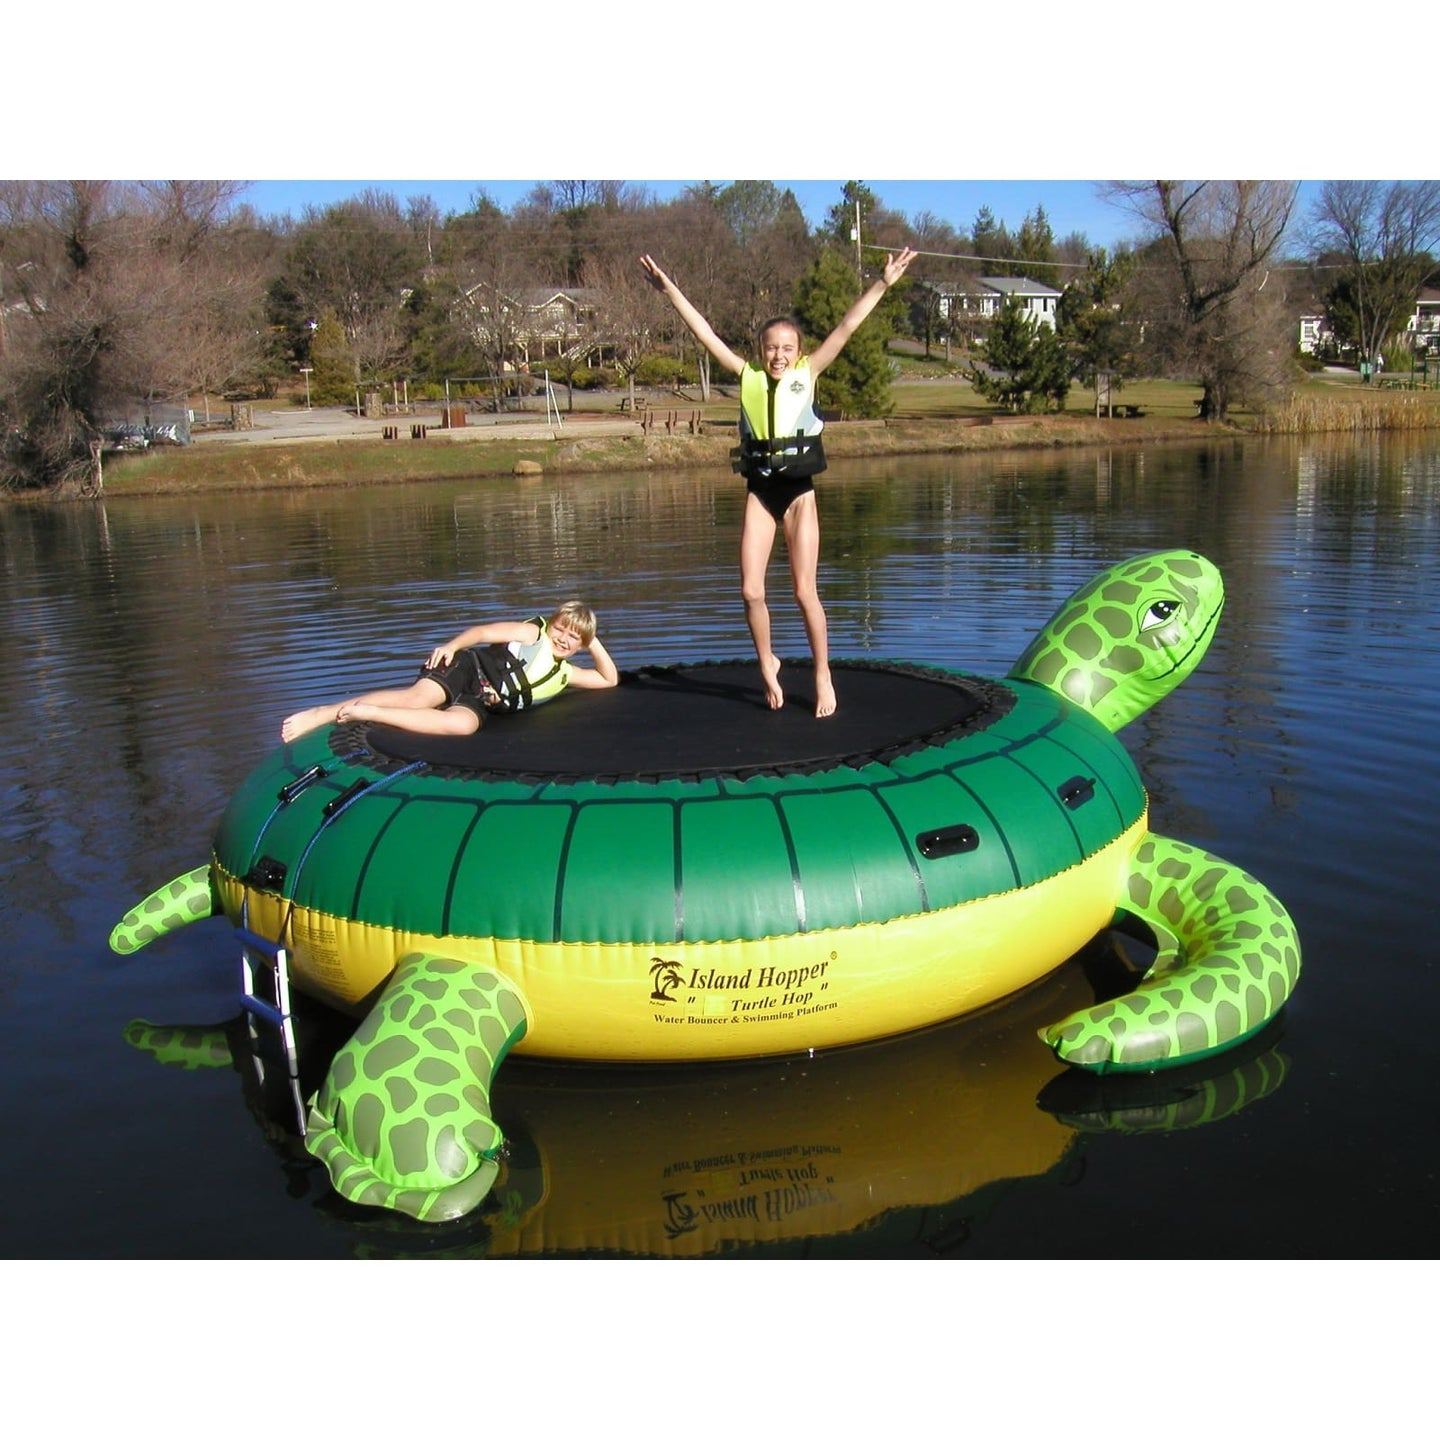 Island Hopper Turtle Hop Green Recreational Water Bouncer - Thop - Water Bouncers